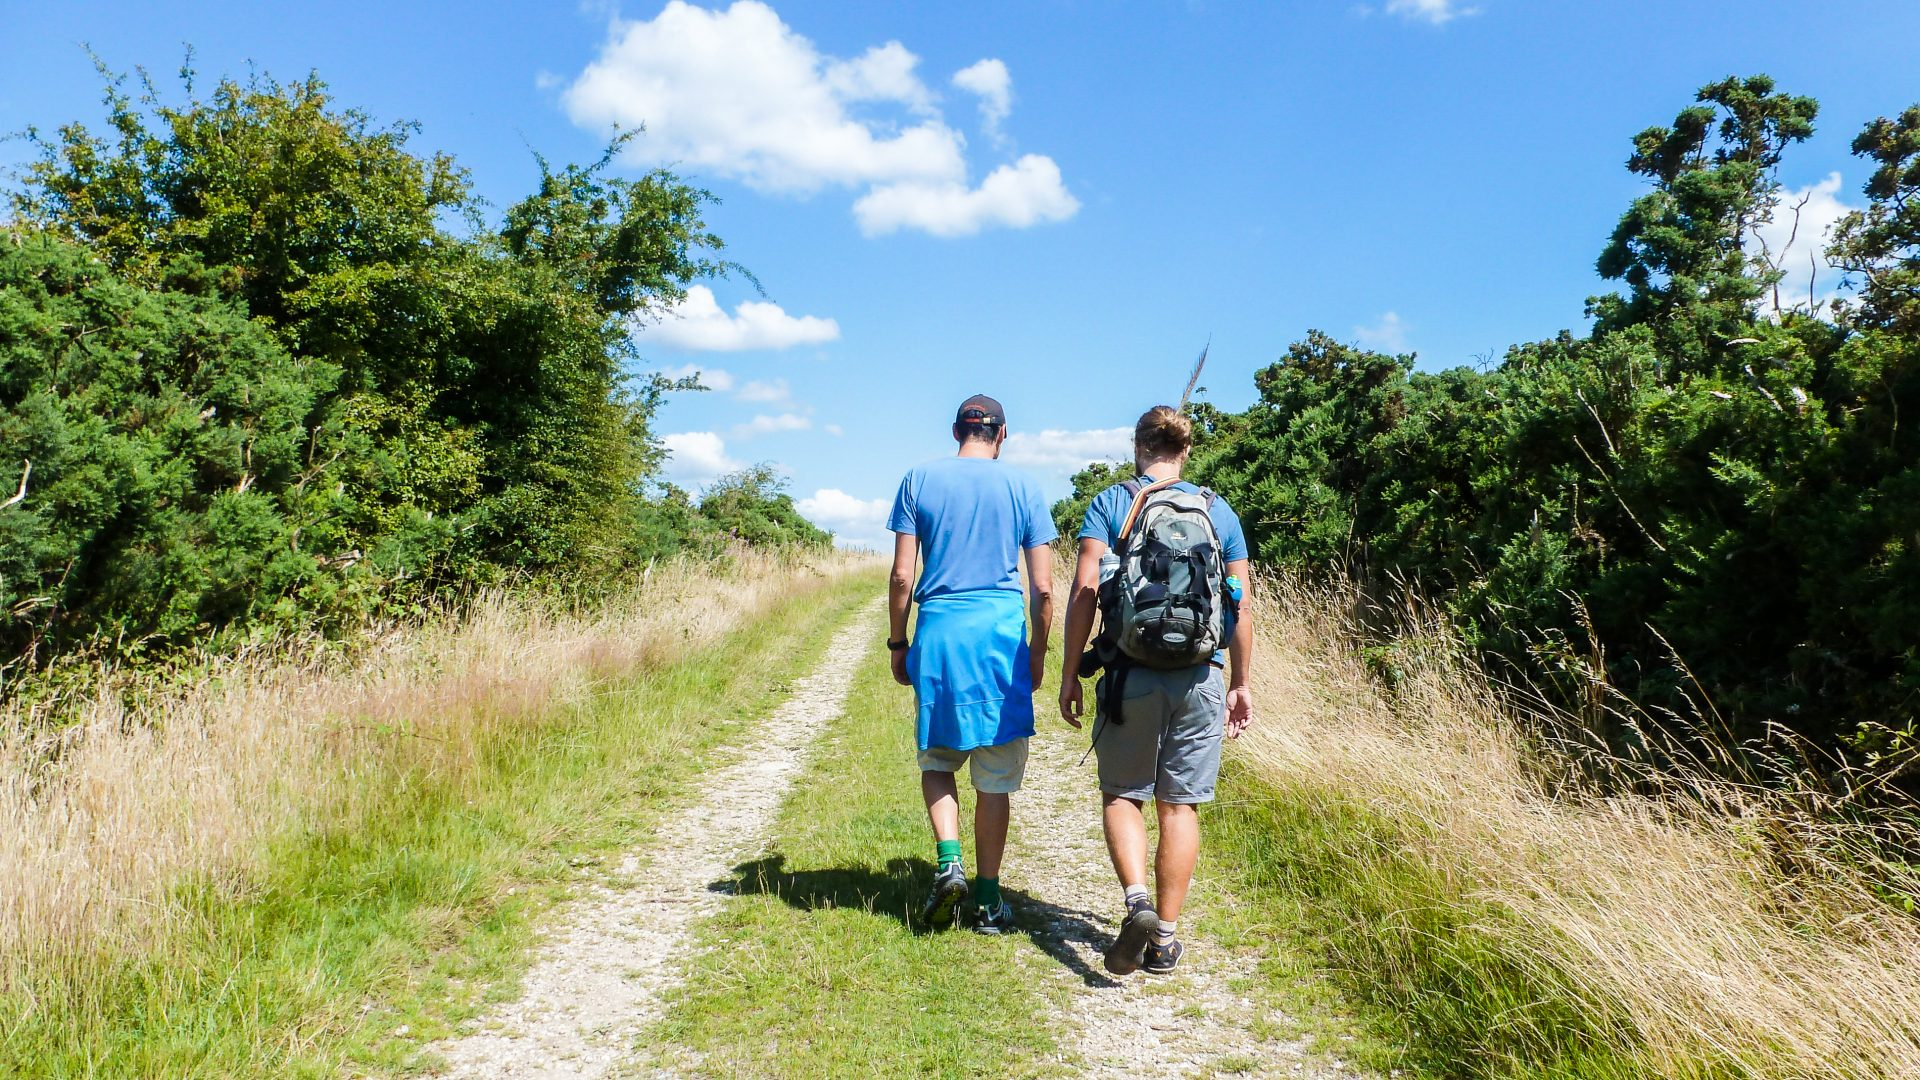 Experiencing nature: Adrian Kowal and Andres Roberts leading a walk